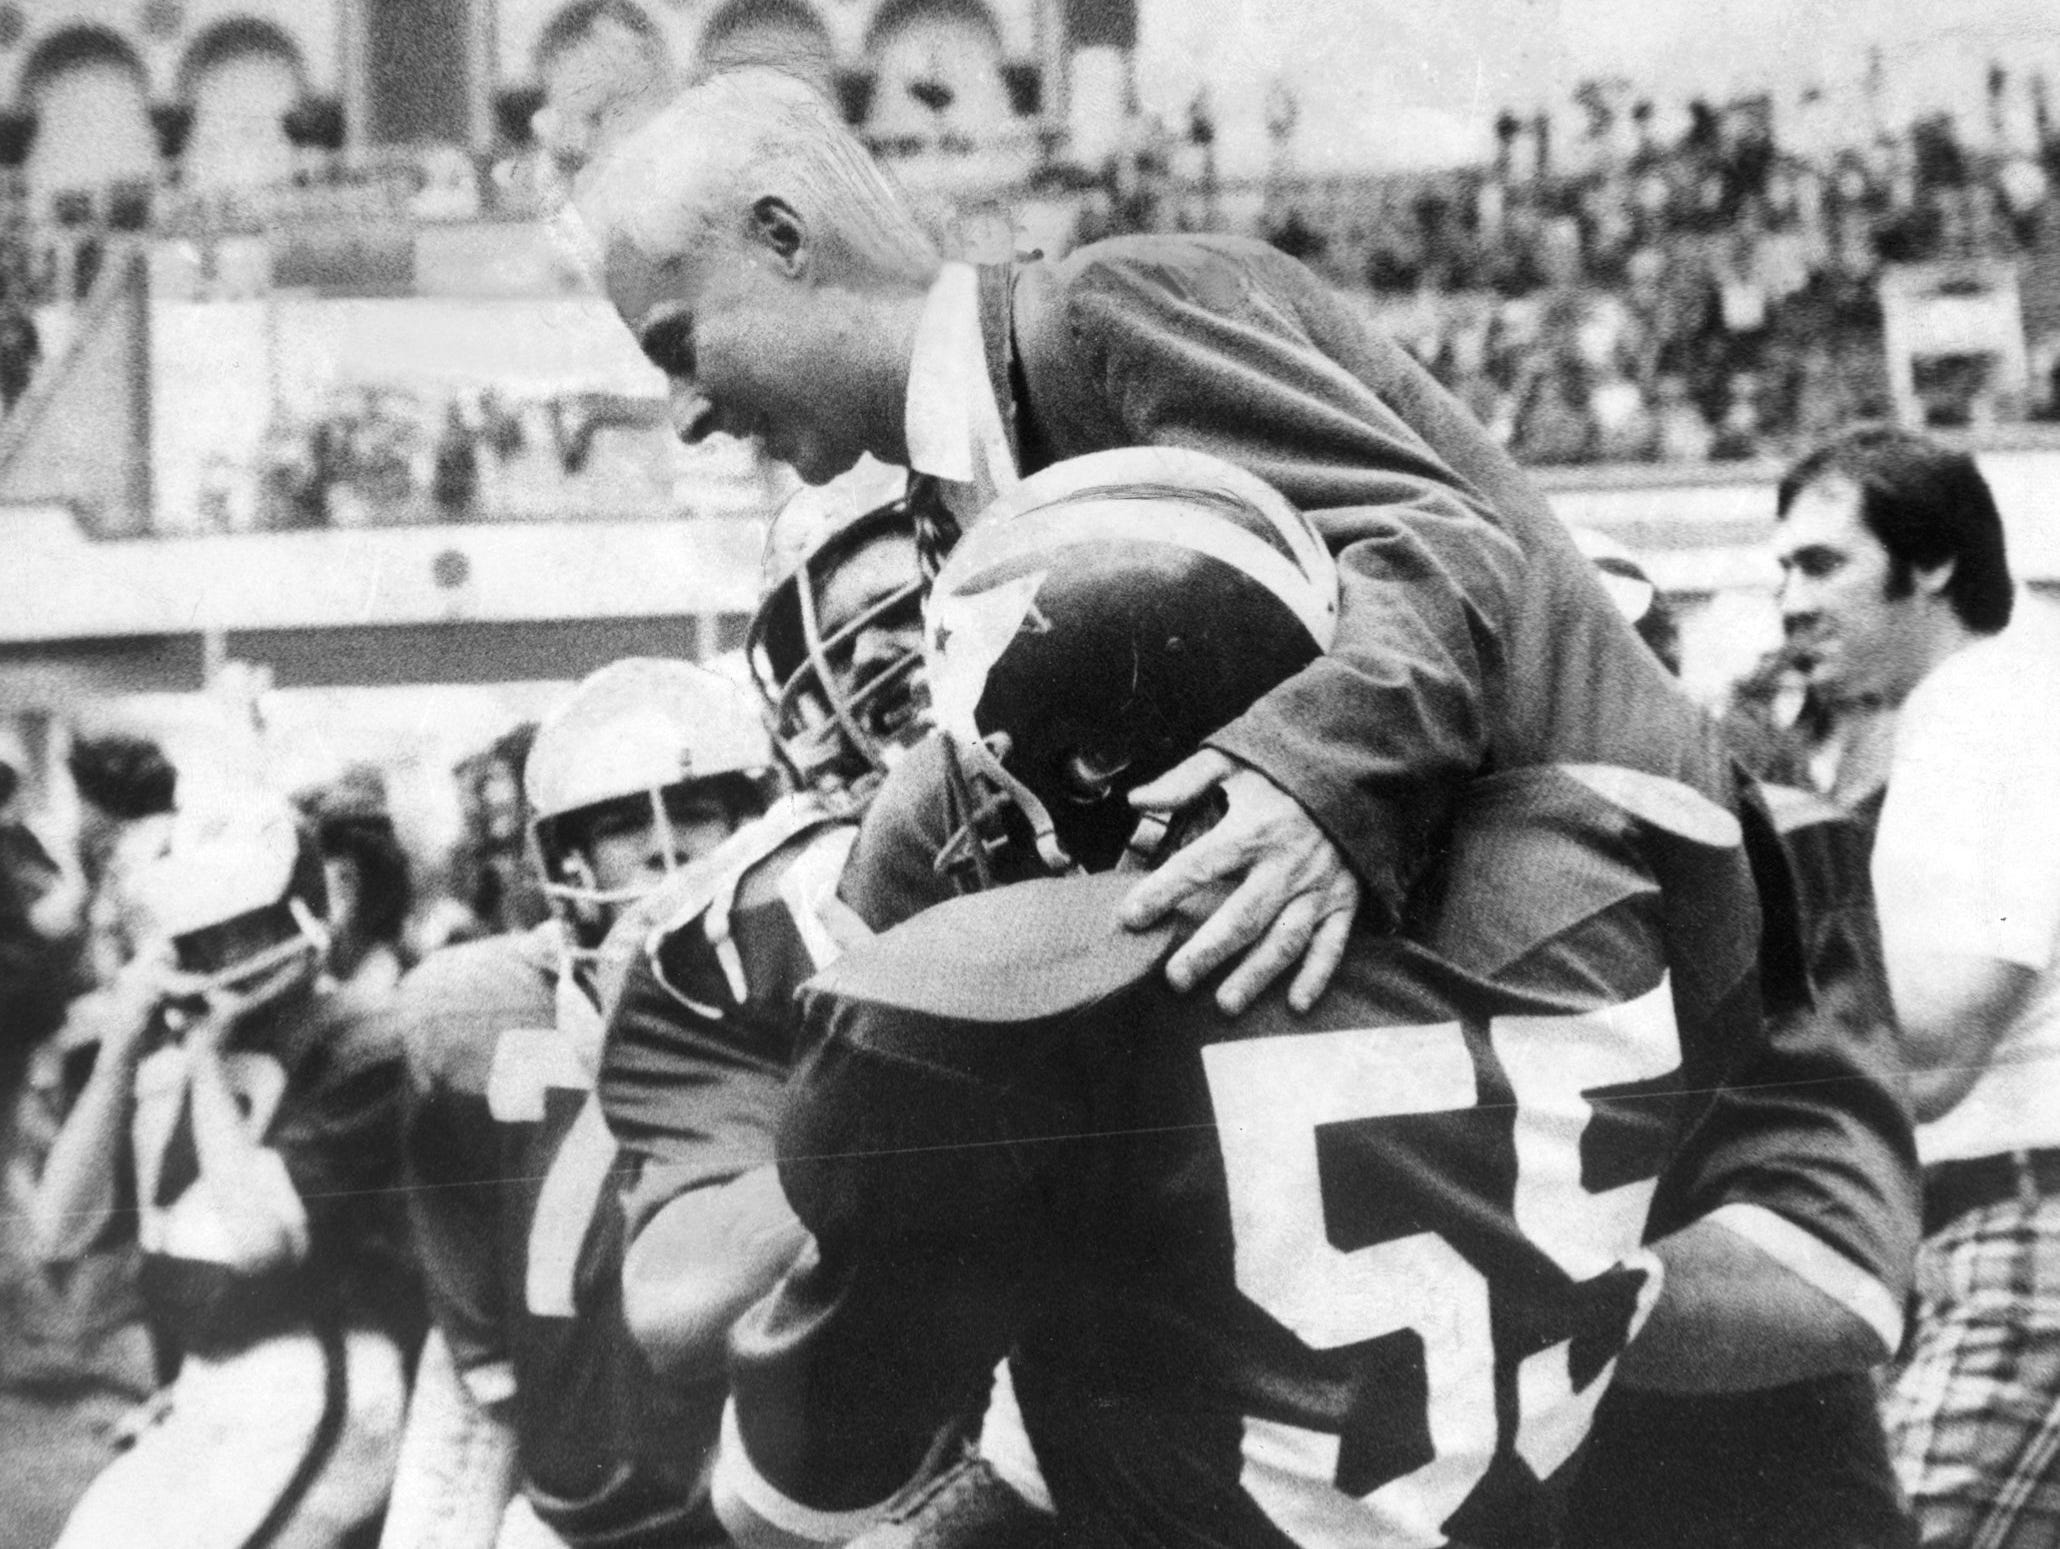 Brick players hoist coach Warren Wolf on their shoulders after the Green Dragons' victory over Camden in the 1974 NJSIAA South Jersey Group IV championship game in Atlantic City, the first year of high school football playoffs in the state.